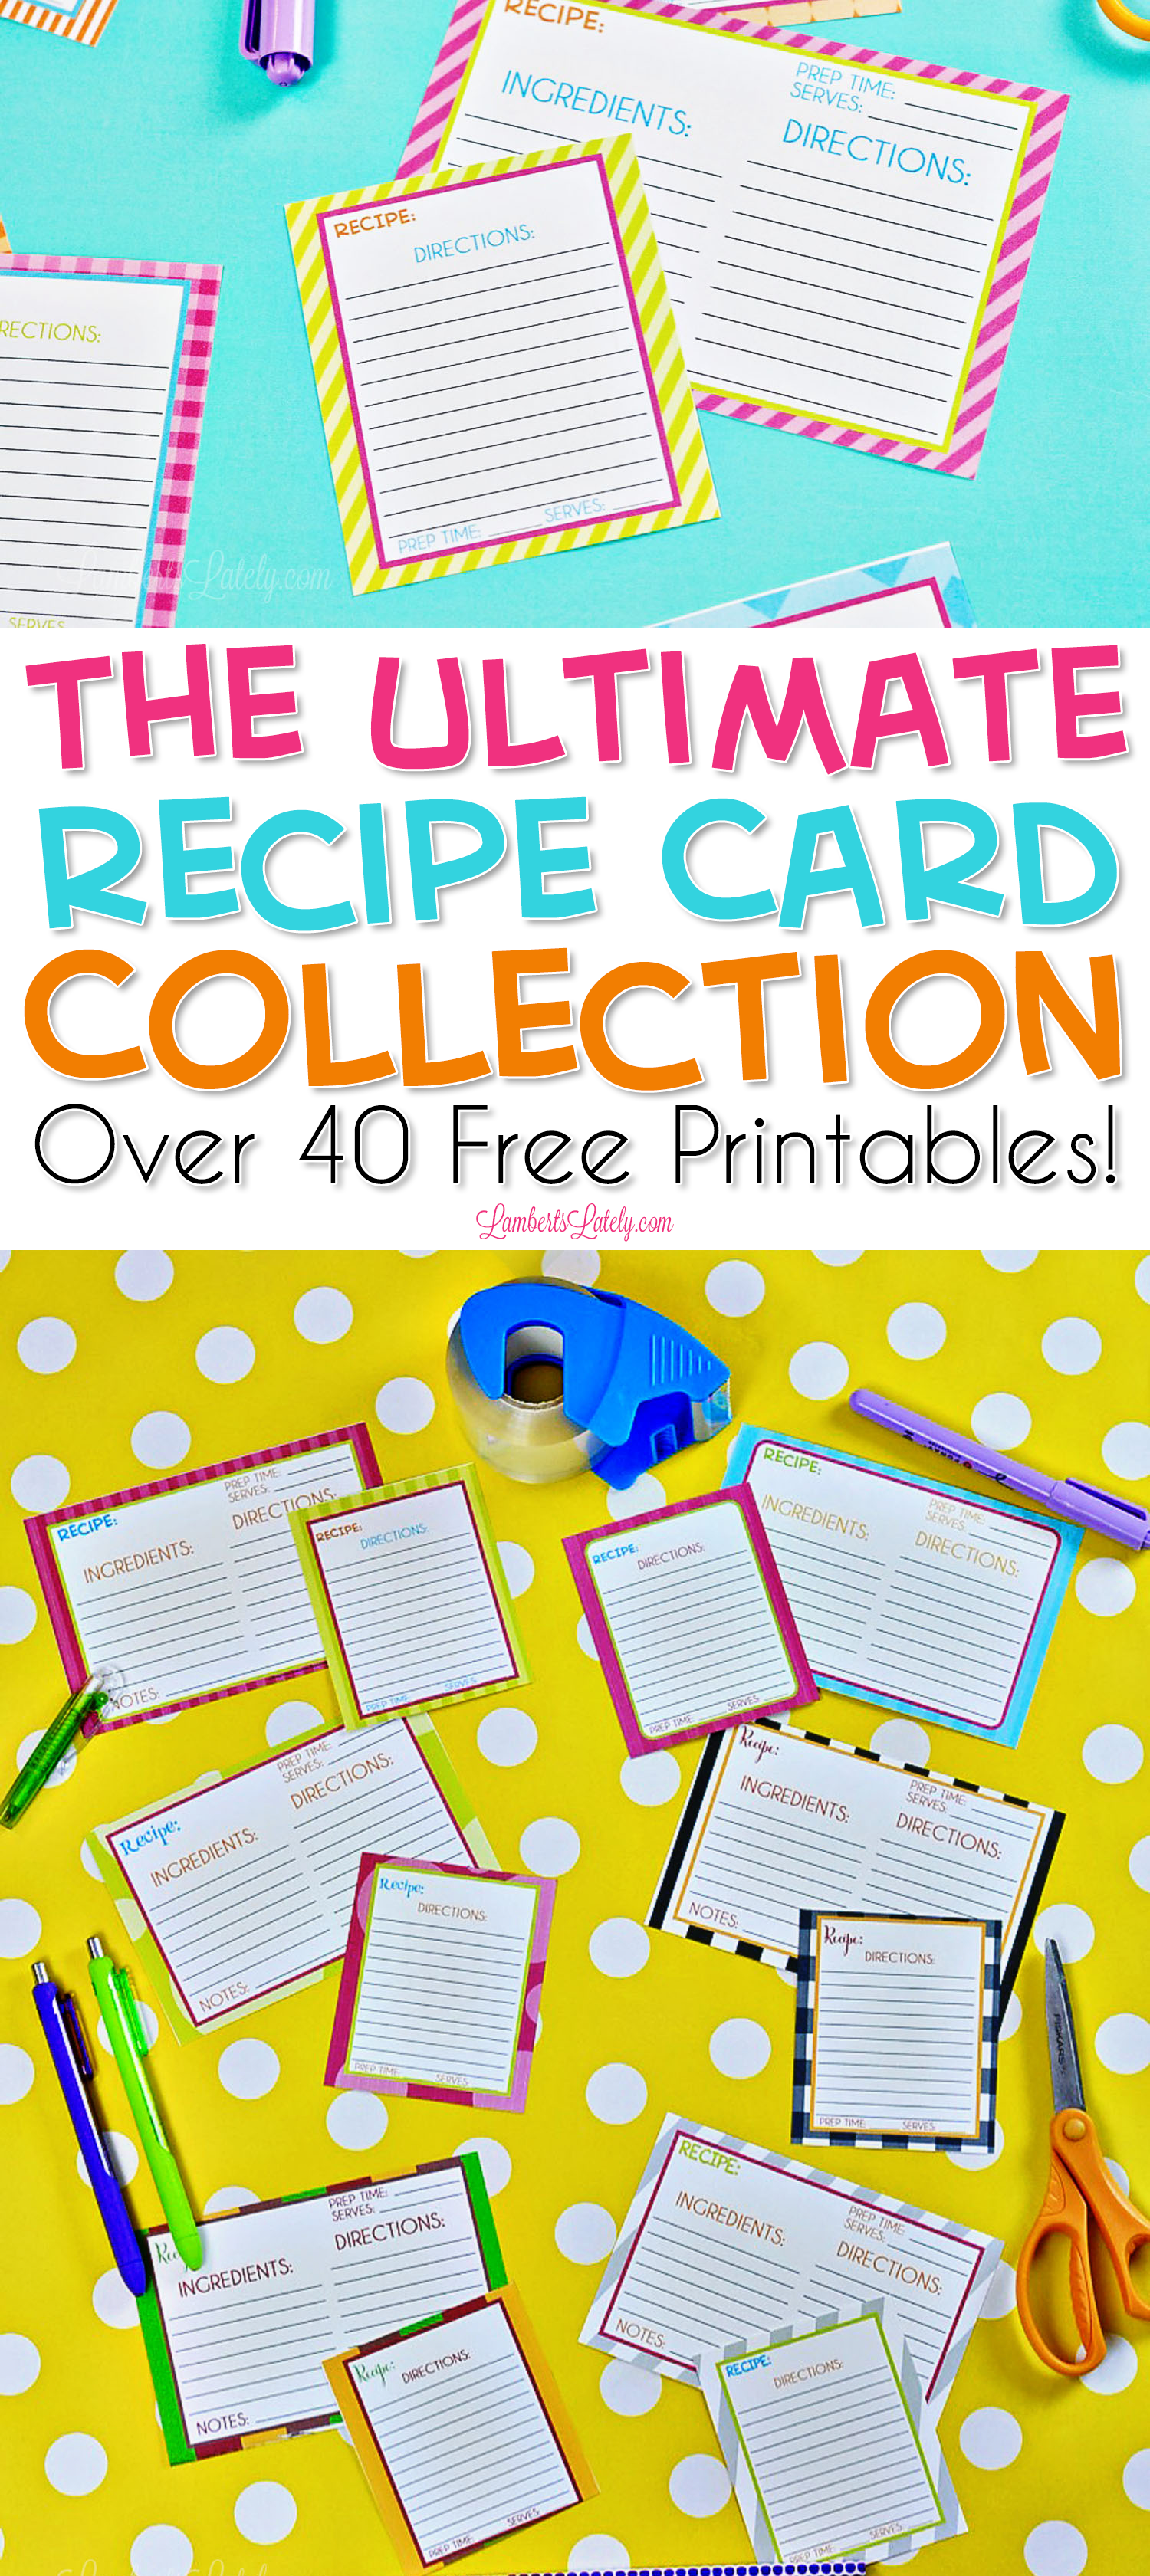 These free printable recipe cards are so cute and colorful! The easy blank template includes places for ingredients & directions and the design is perfect for a DIY recipe collection.